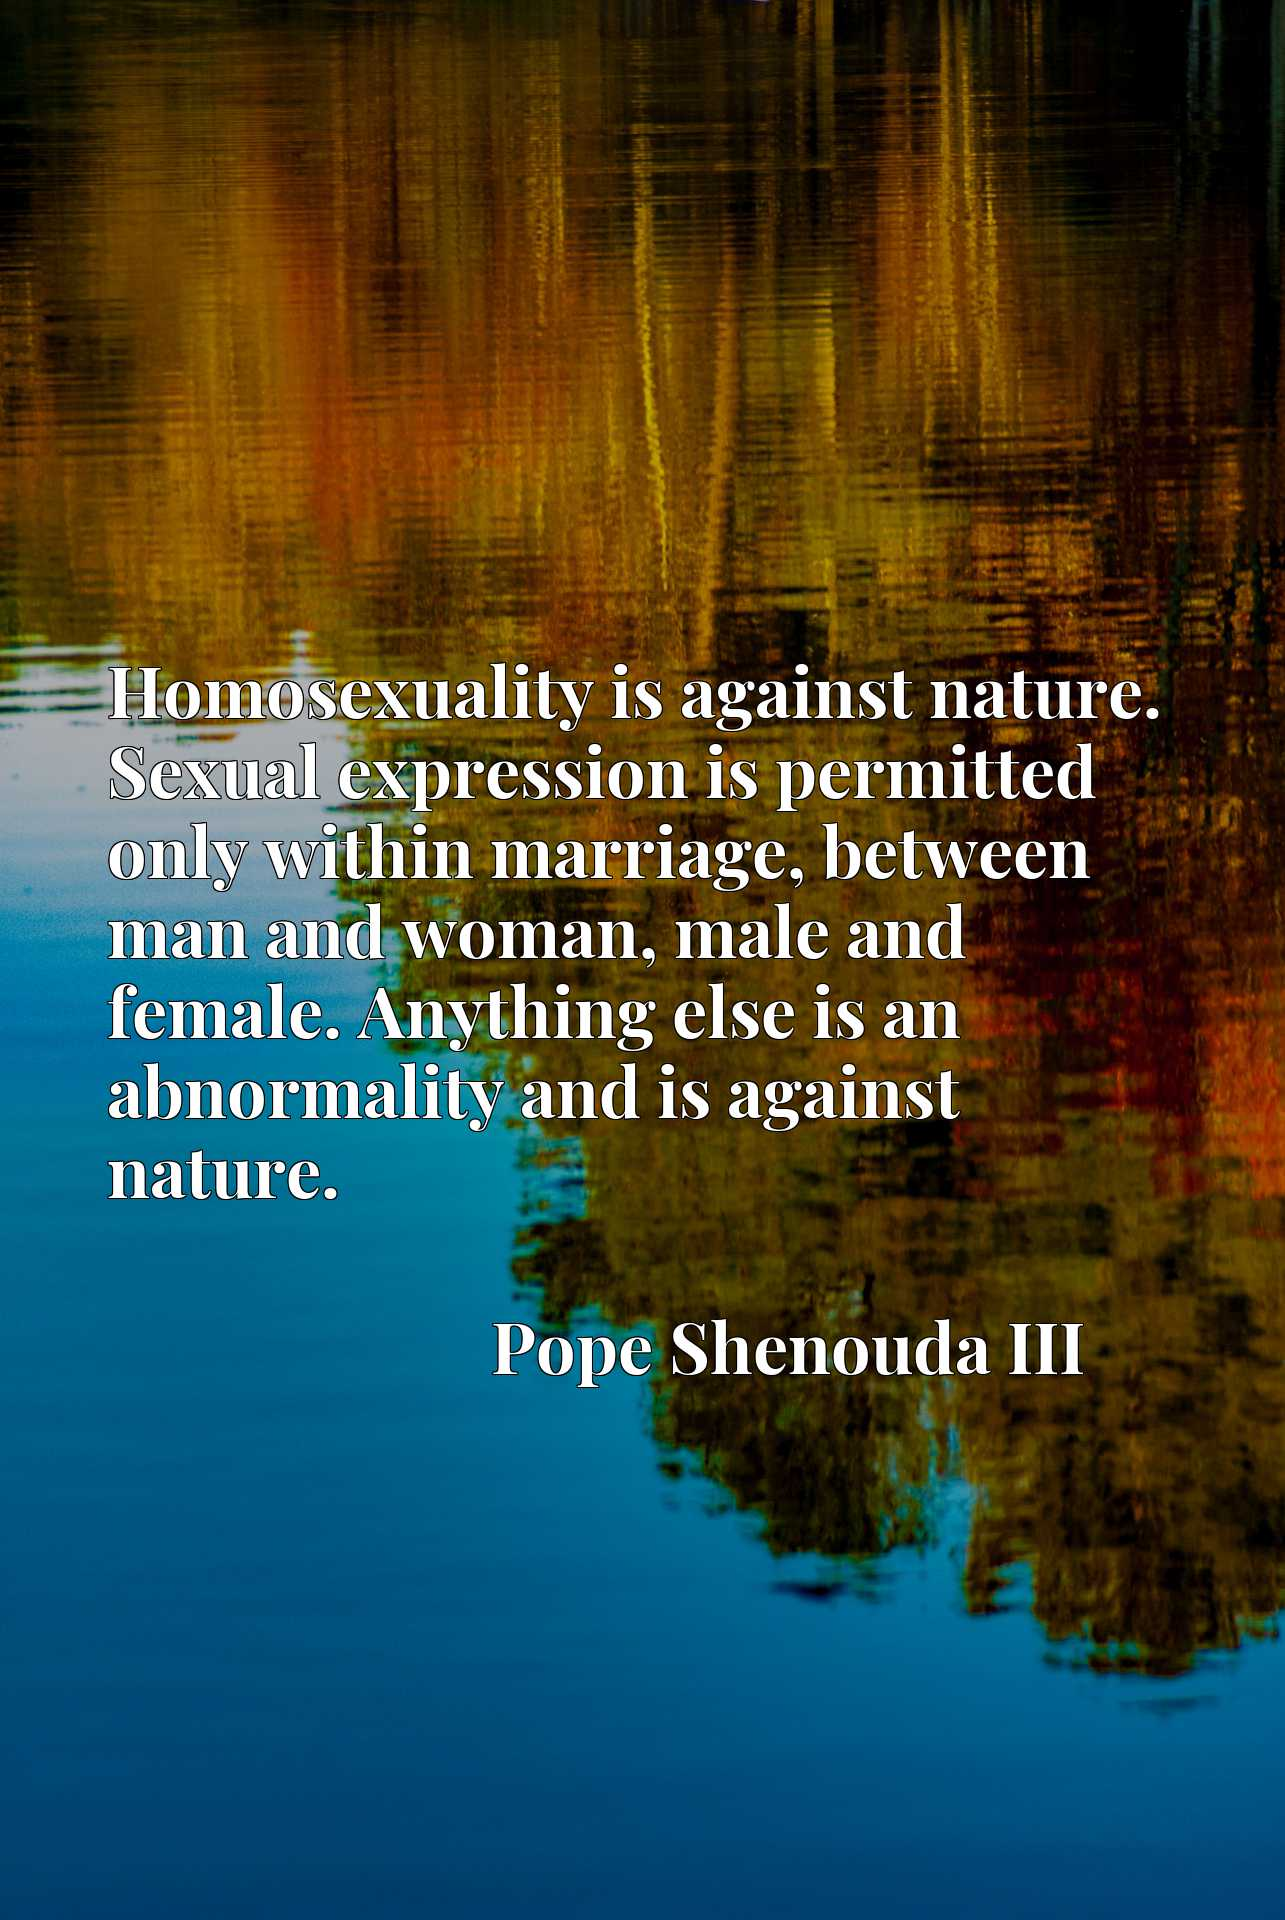 Homosexuality is against nature. Sexual expression is permitted only within marriage, between man and woman, male and female. Anything else is an abnormality and is against nature.